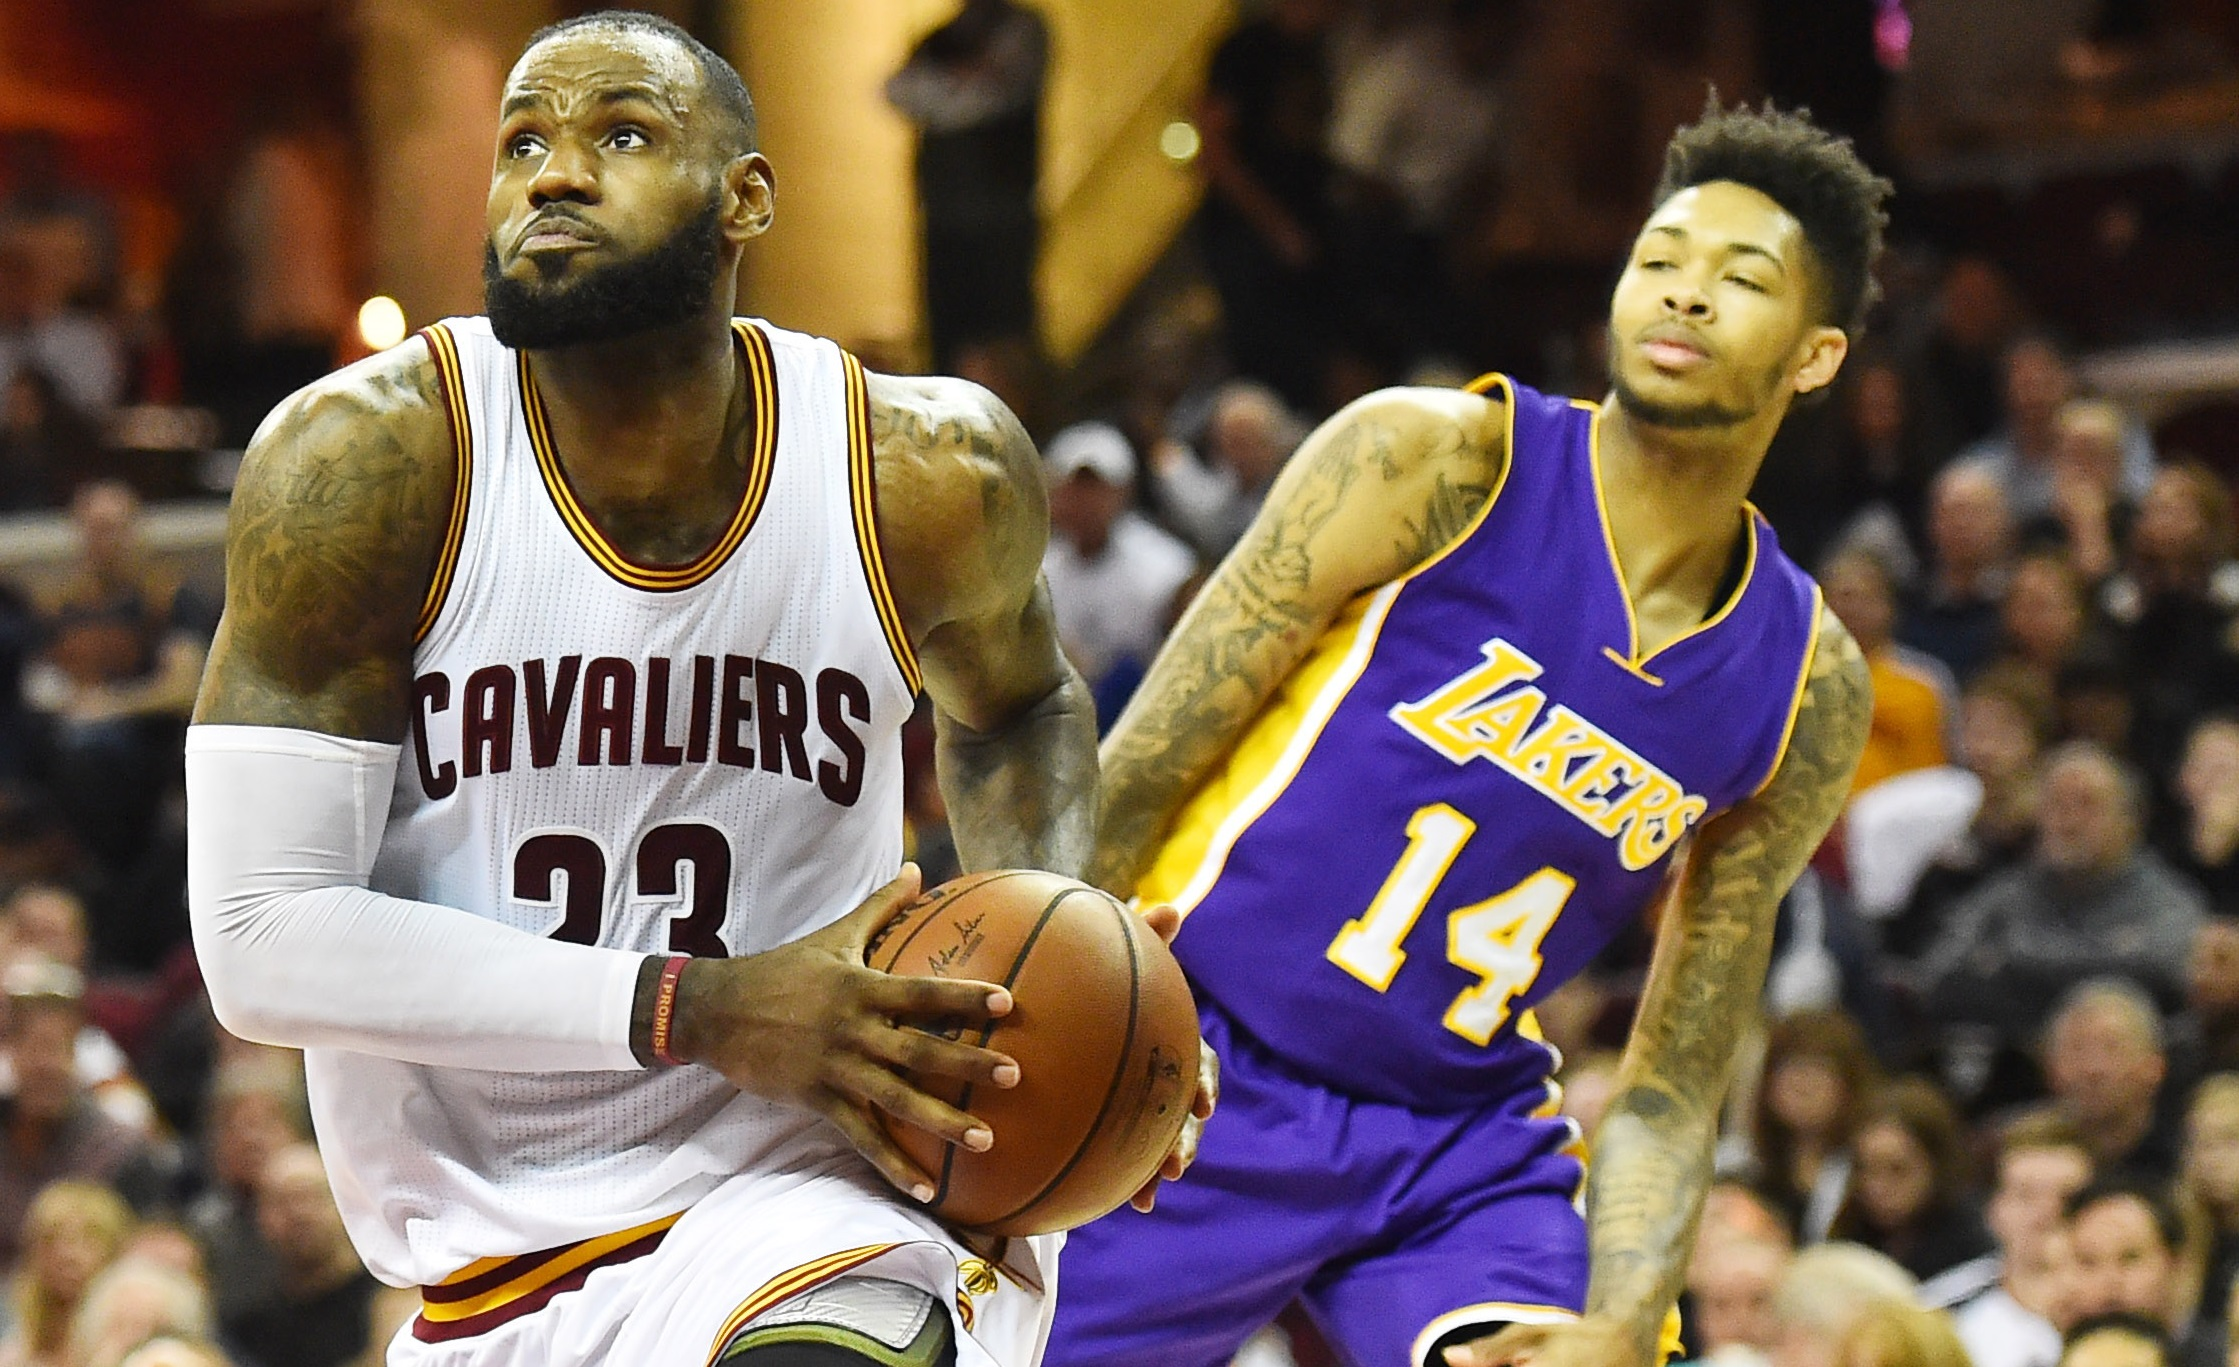 Dec 17, 2016; Cleveland, OH, USA; Cleveland Cavaliers forward LeBron James (23) drives to the basket against Los Angeles Lakers forward Brandon Ingram (14) during the second half at Quicken Loans Arena. The Cavs won 119-108. Mandatory Credit: Ken Blaze-USA TODAY Sports